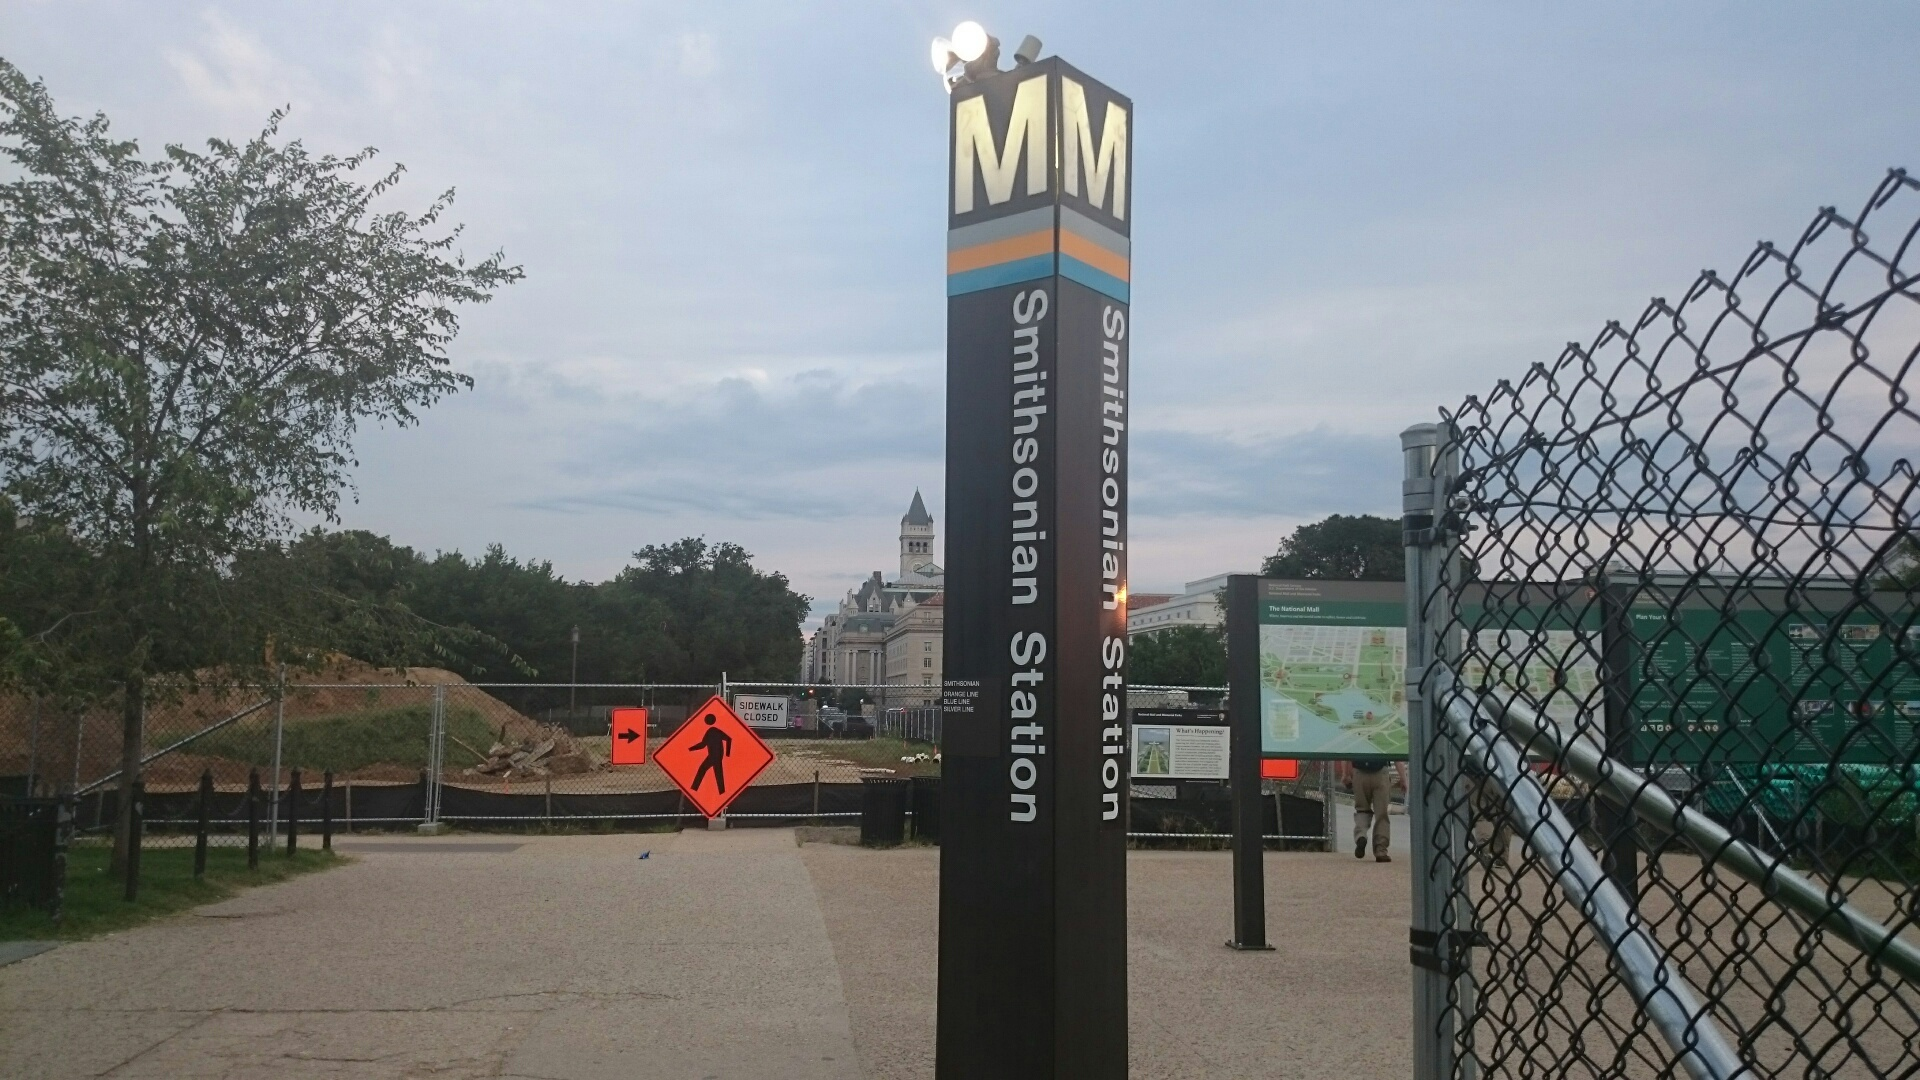 Metro committee recommends new names for 2 D.C. stations